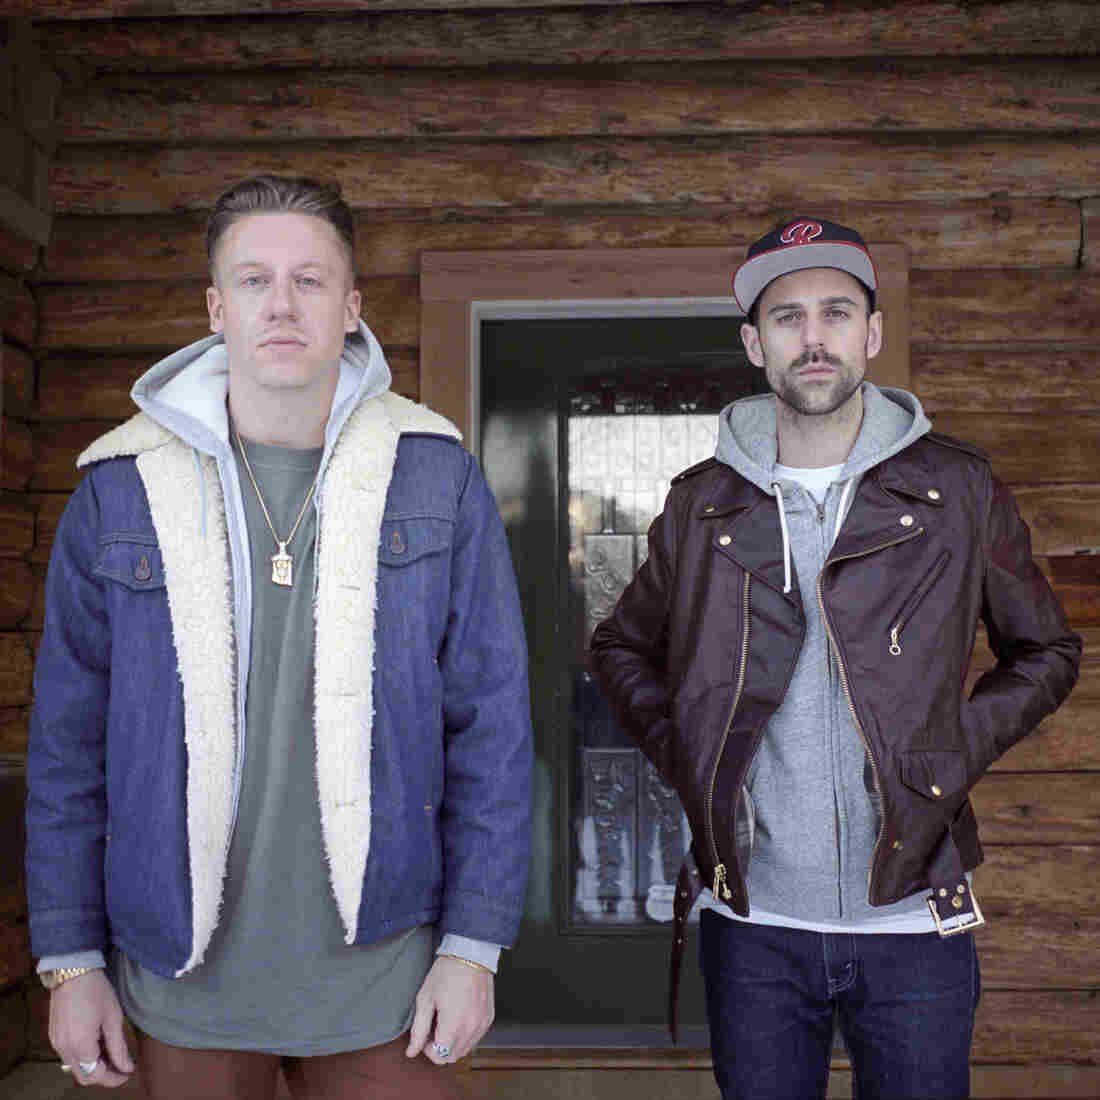 Macklemore & Ryan Lewis will release their album, This Unruly Mess I've Made, on Feb. 26.